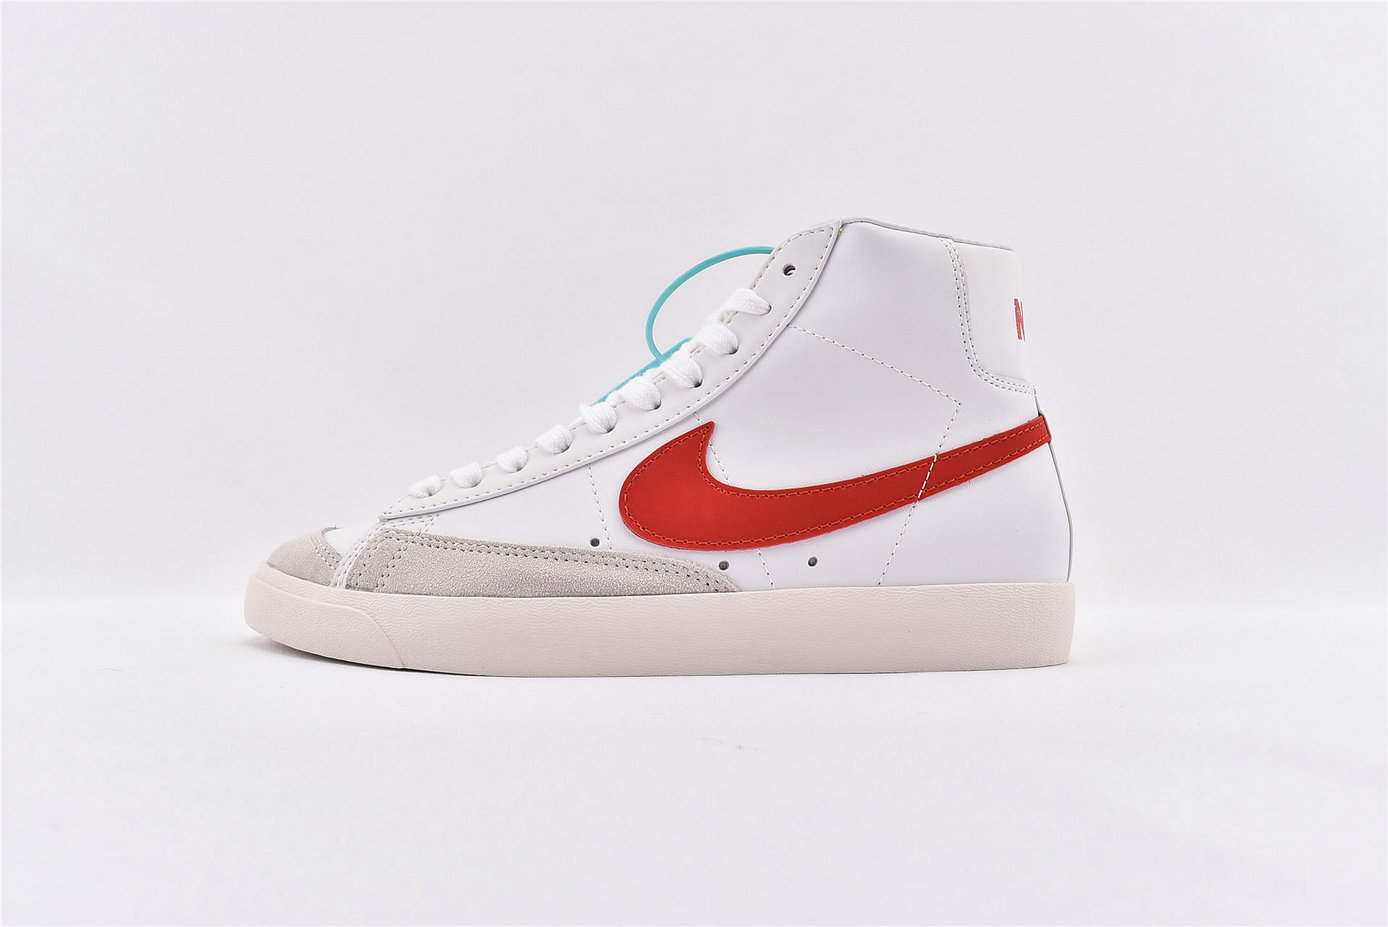 Where To Buy Cheap Nike Blazer Mid 77 VNTG Habanero Red Sail - White BQ6806-600 On VaporMaxRunning